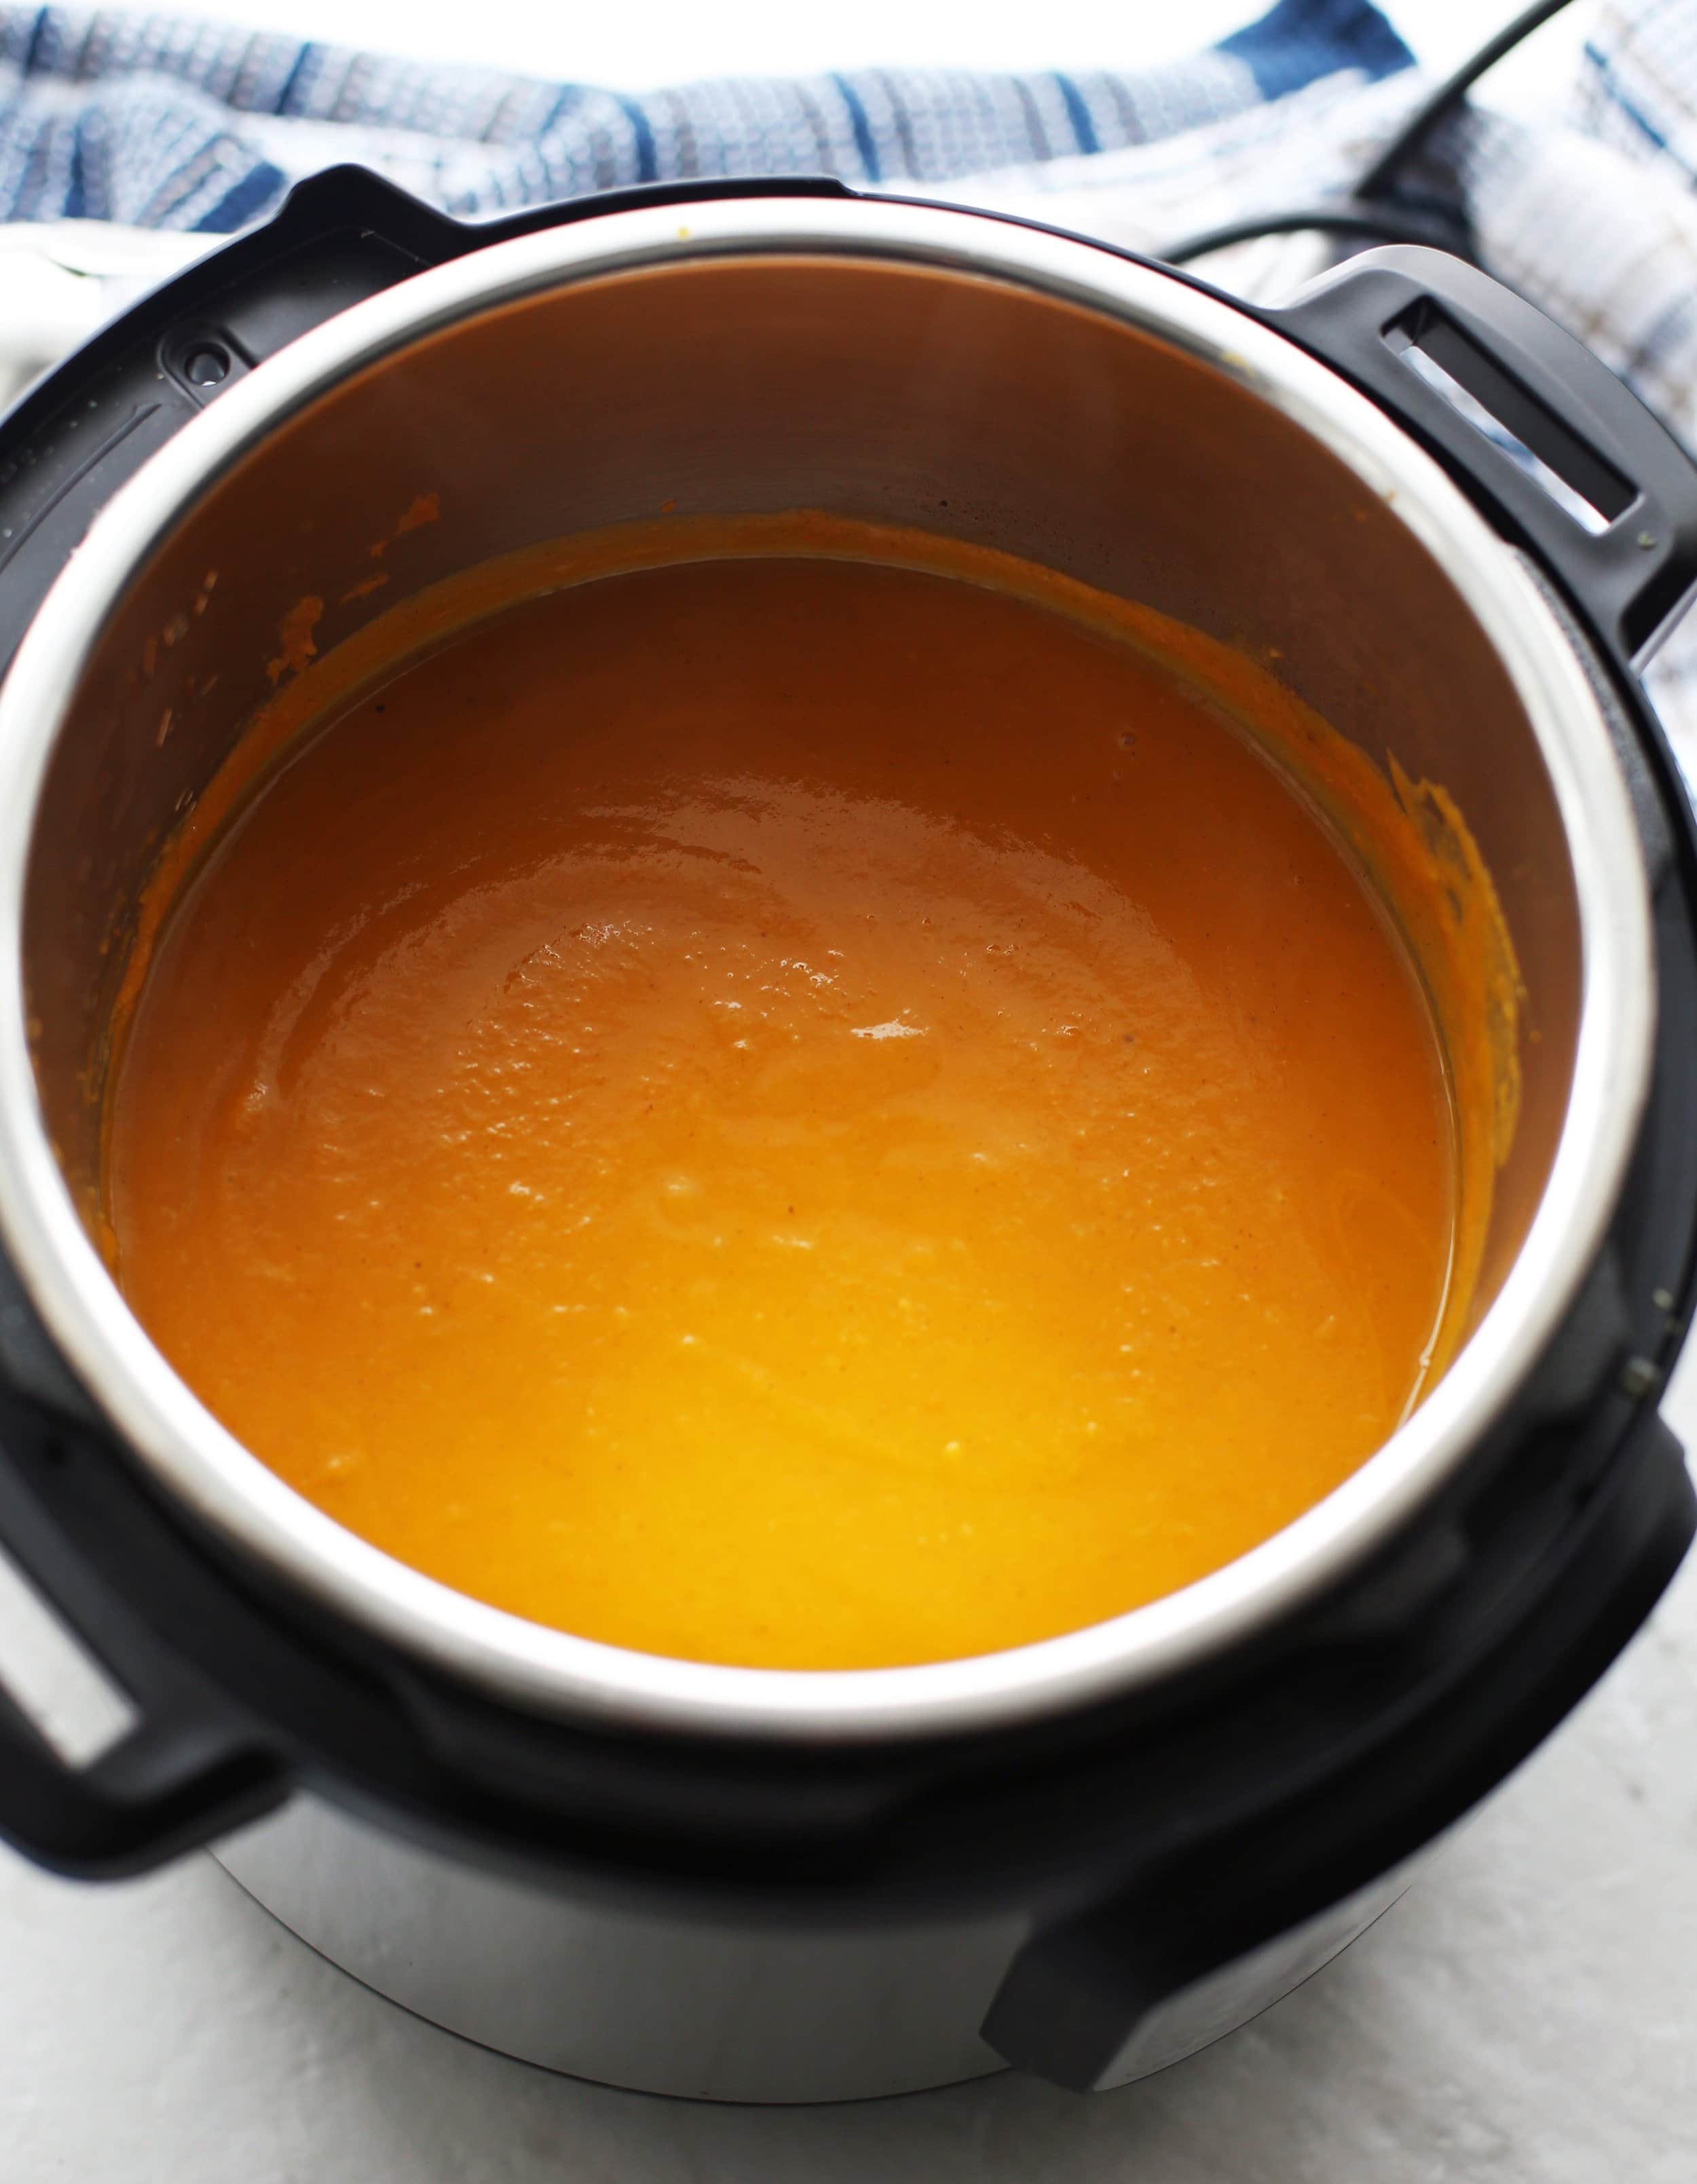 A vibrant orange pureed butternut squash apple ginger soup in the Instant Pot.